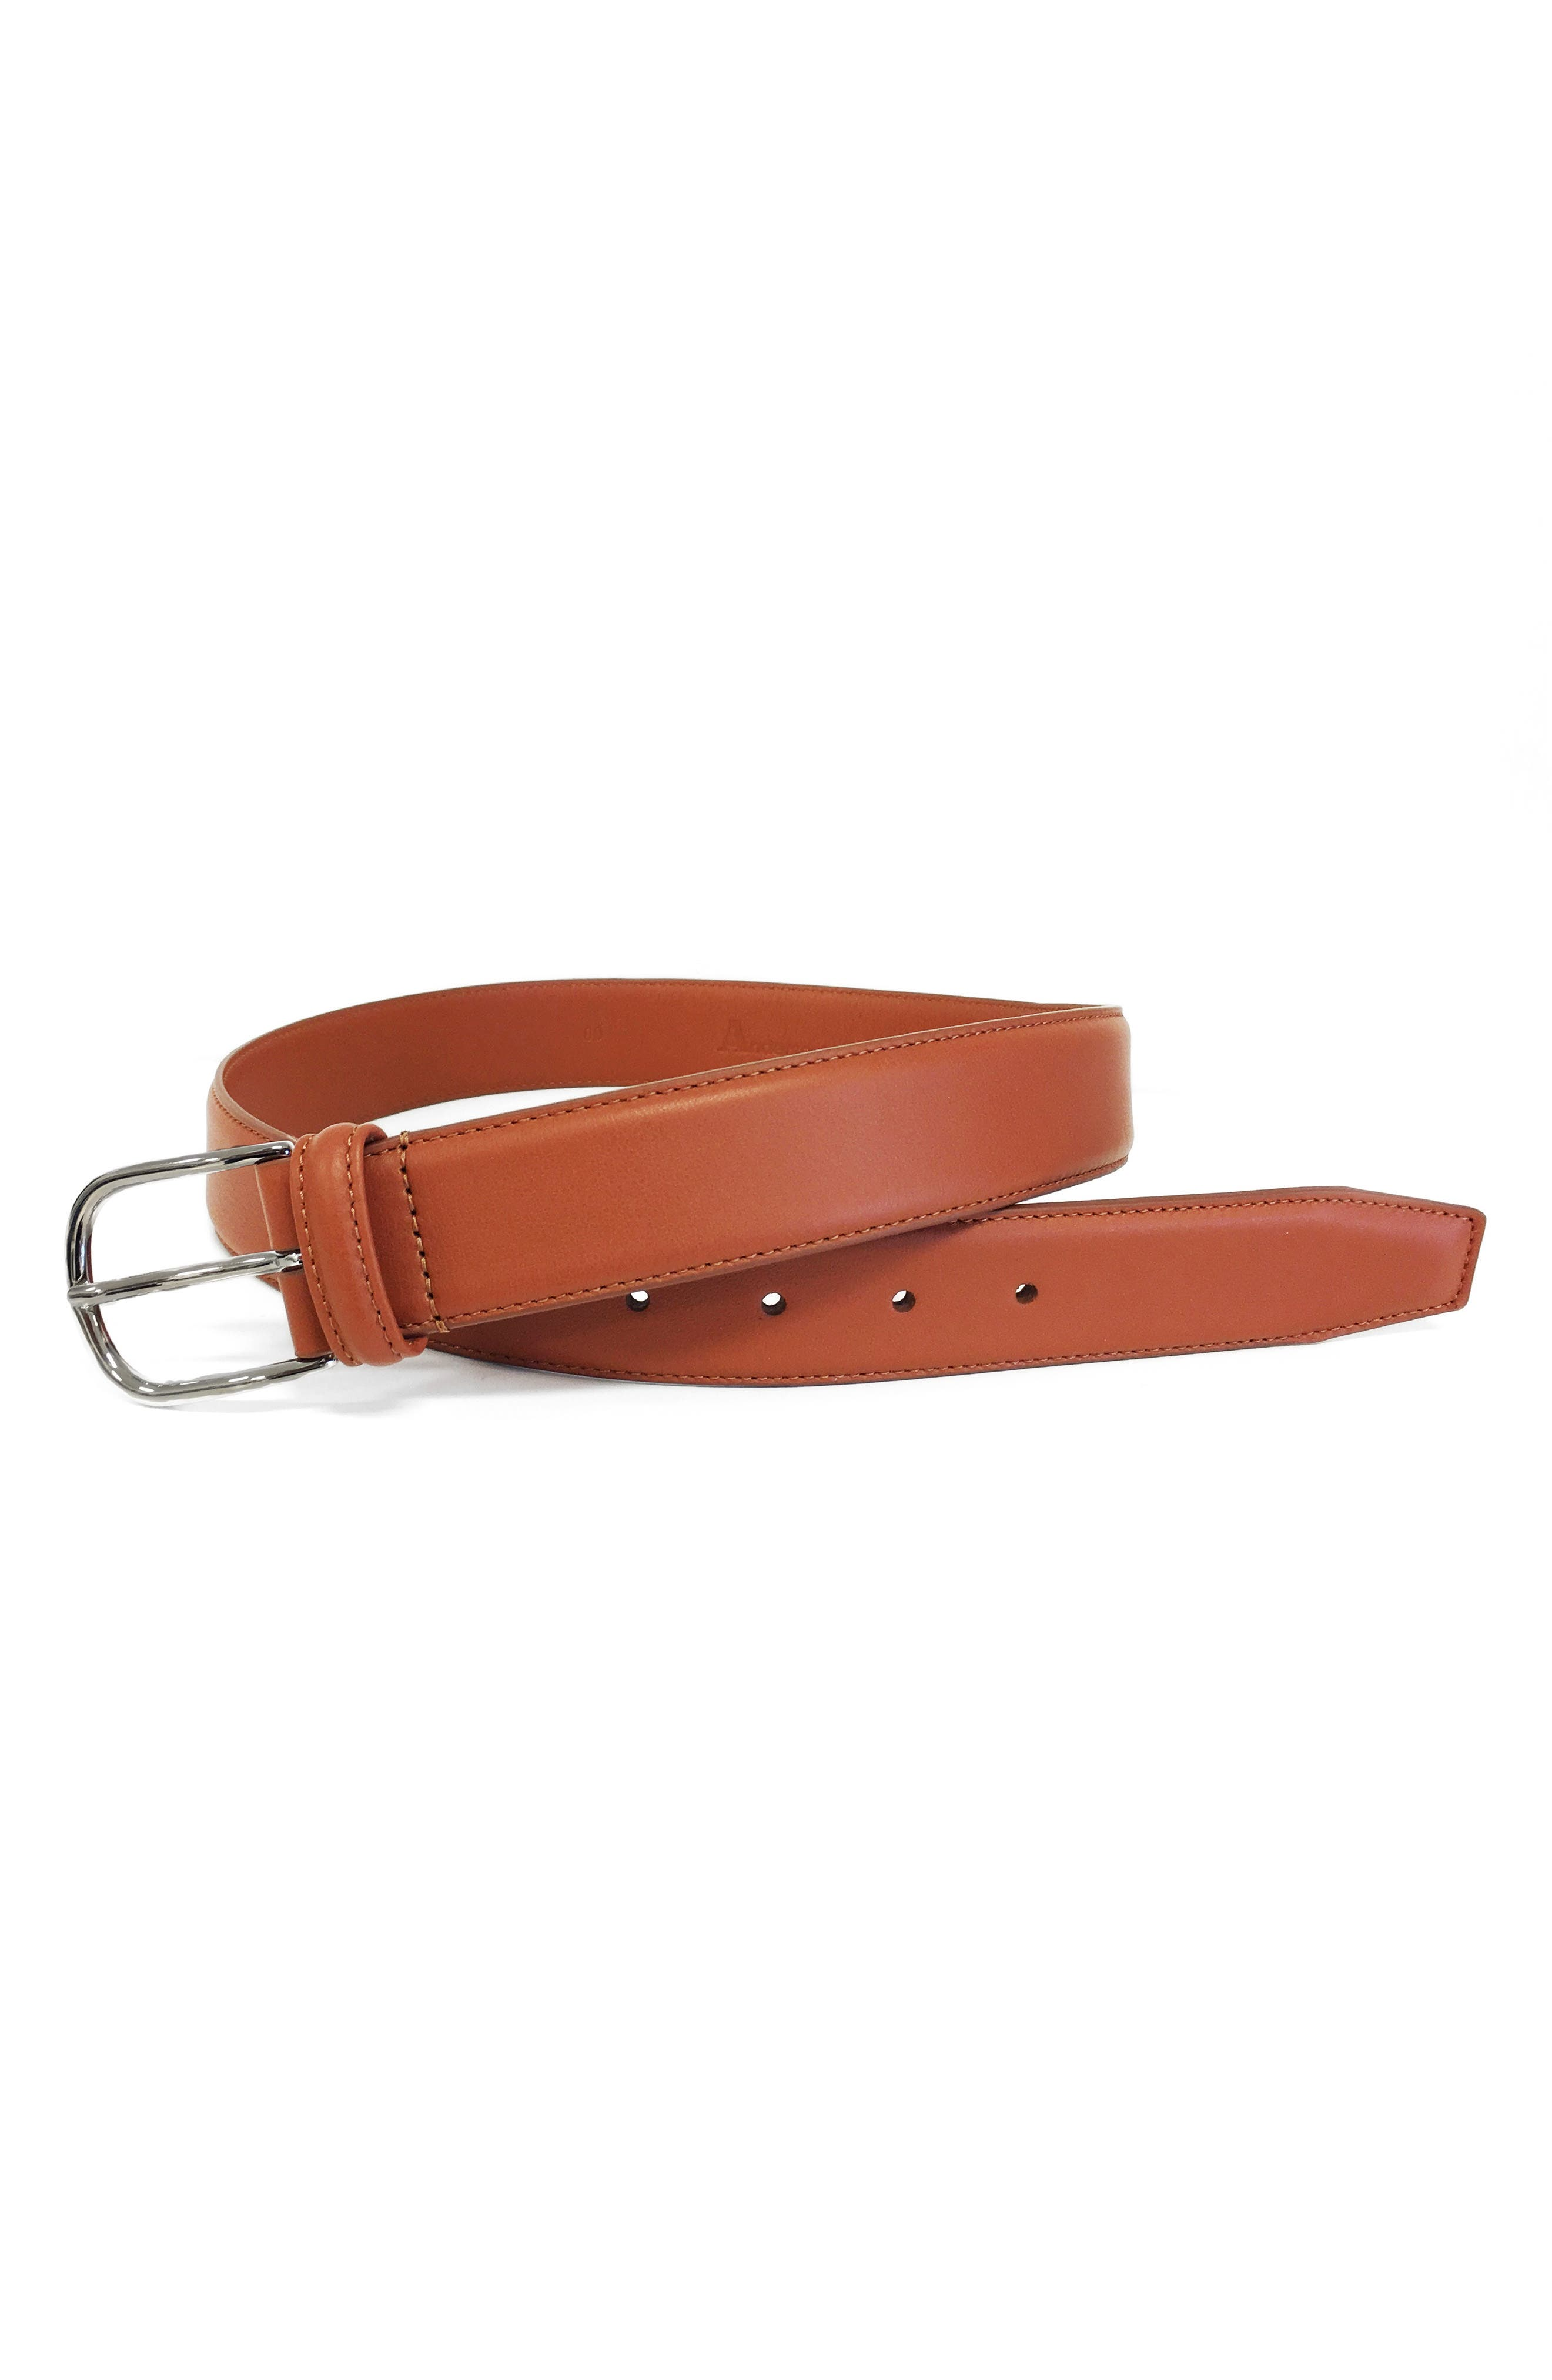 ANDERSONS Leather Belt in Light Brown